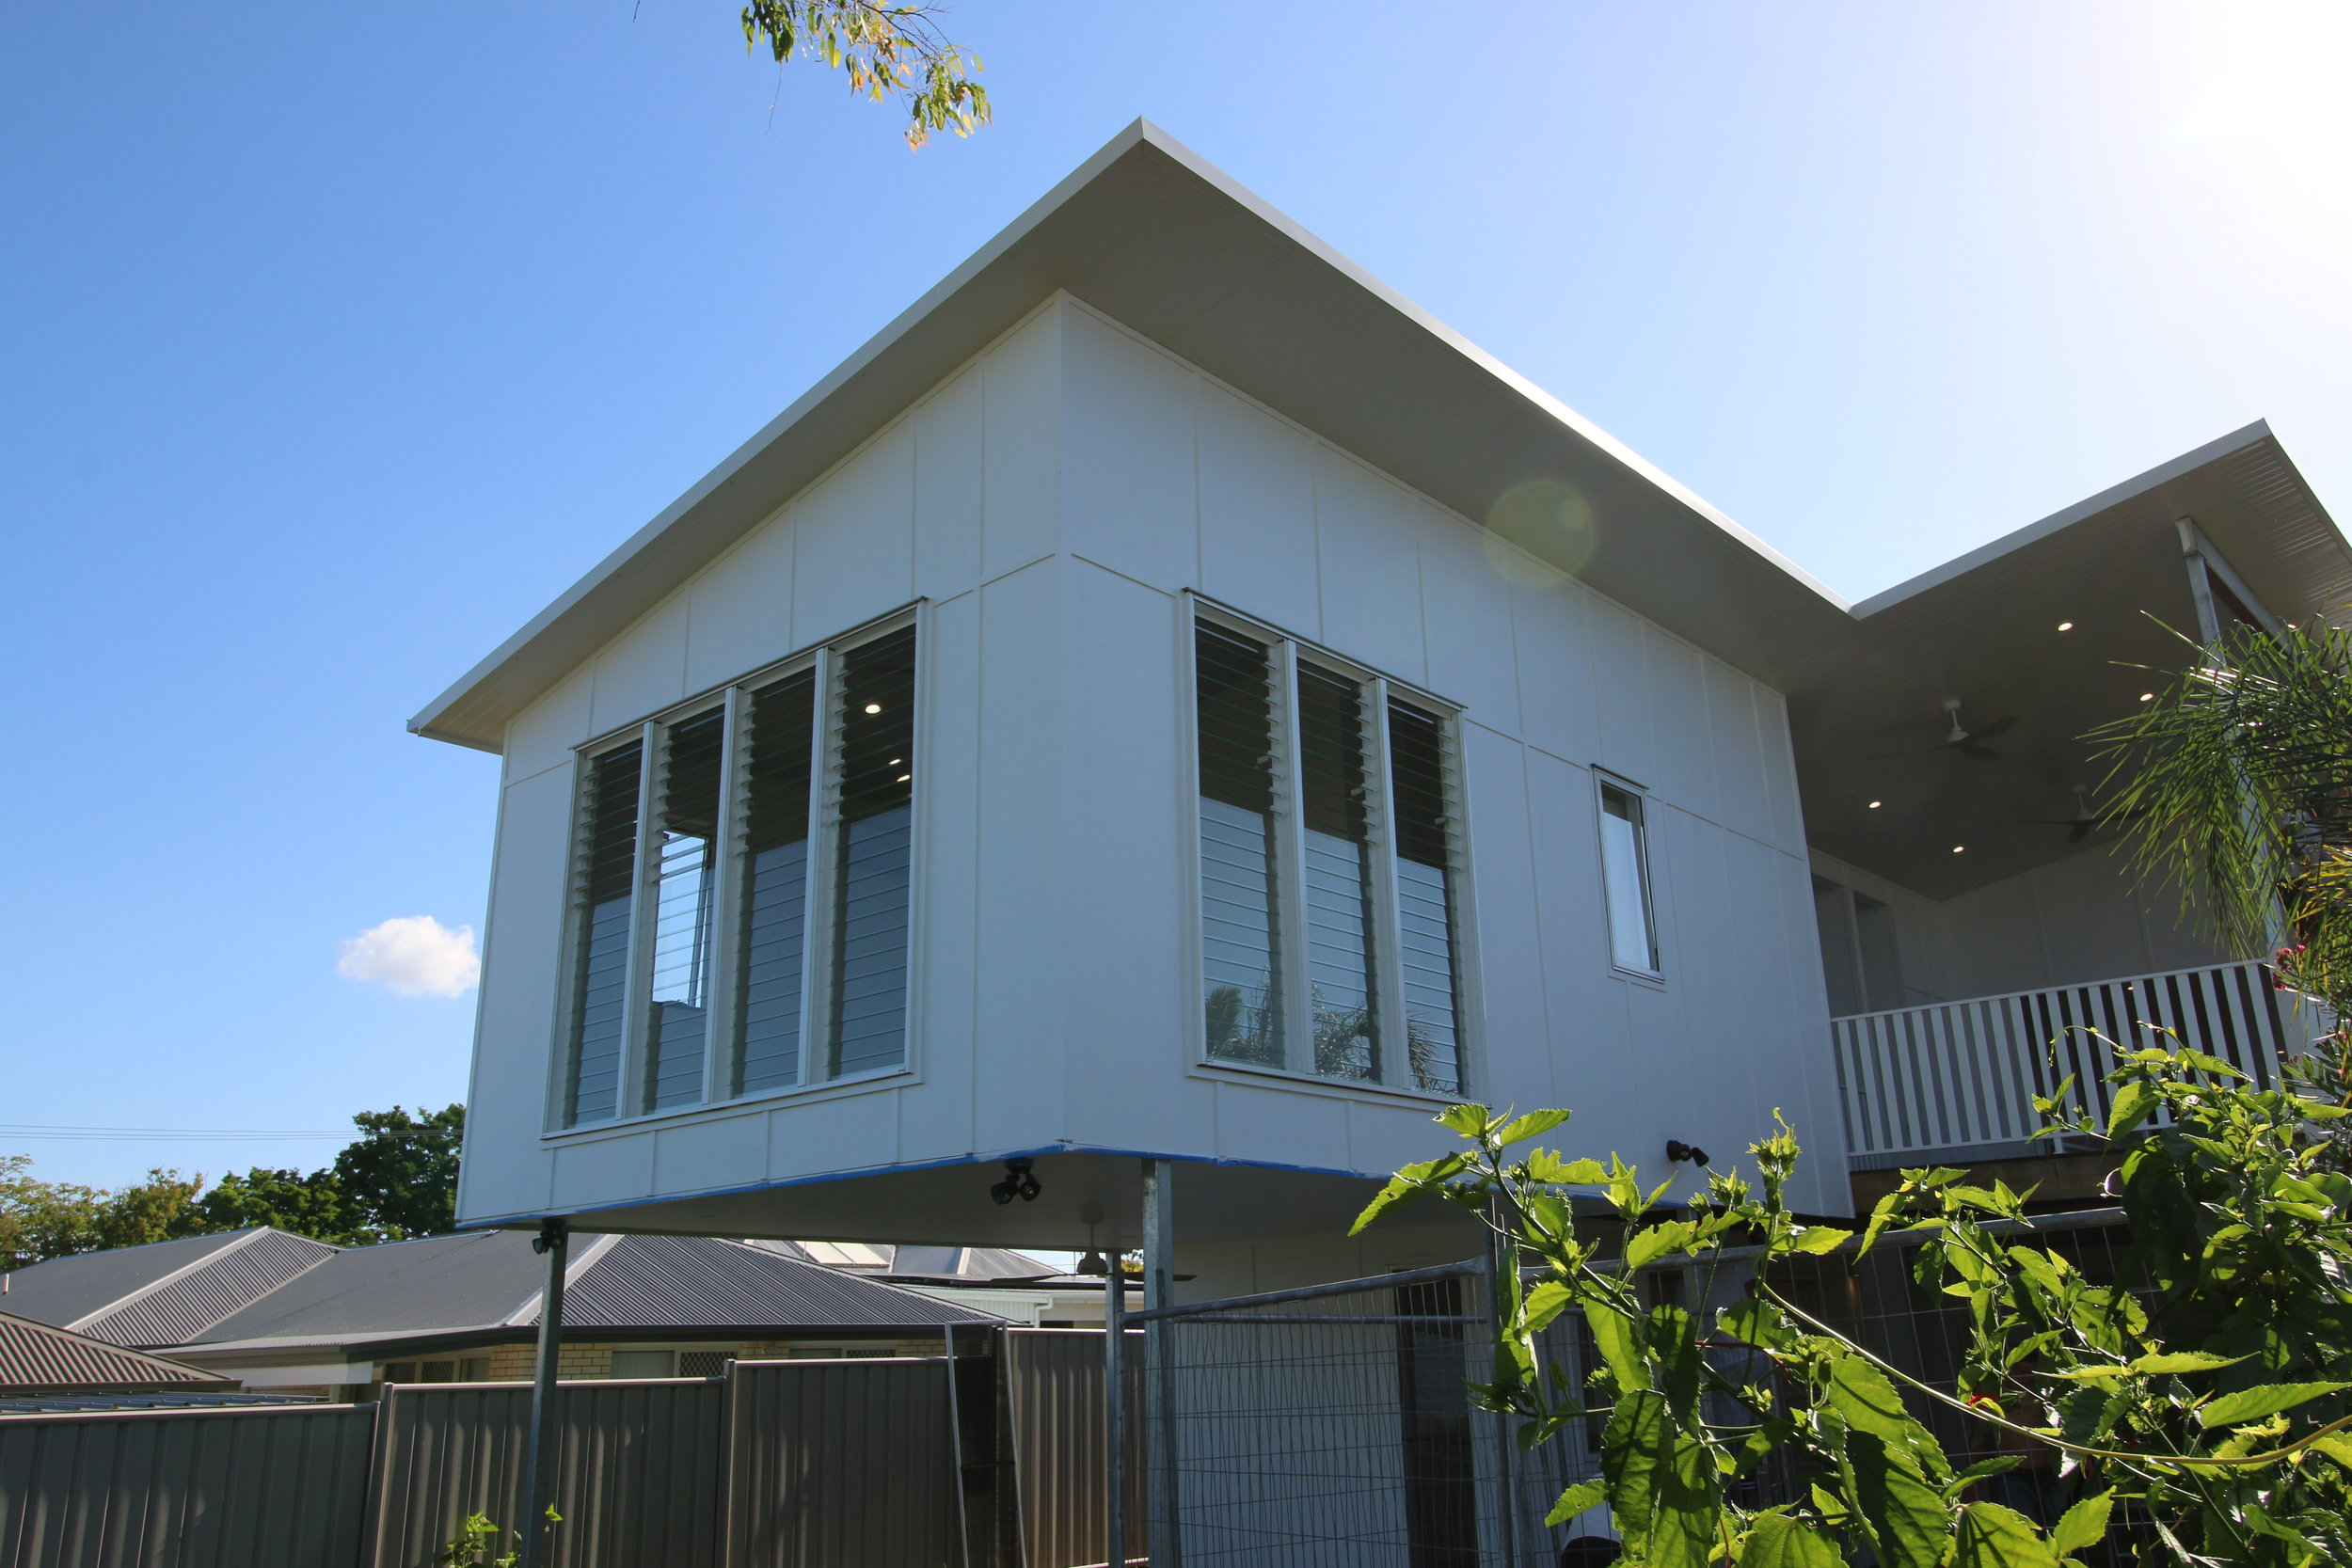 OXLEY HOUSE EXTENSION